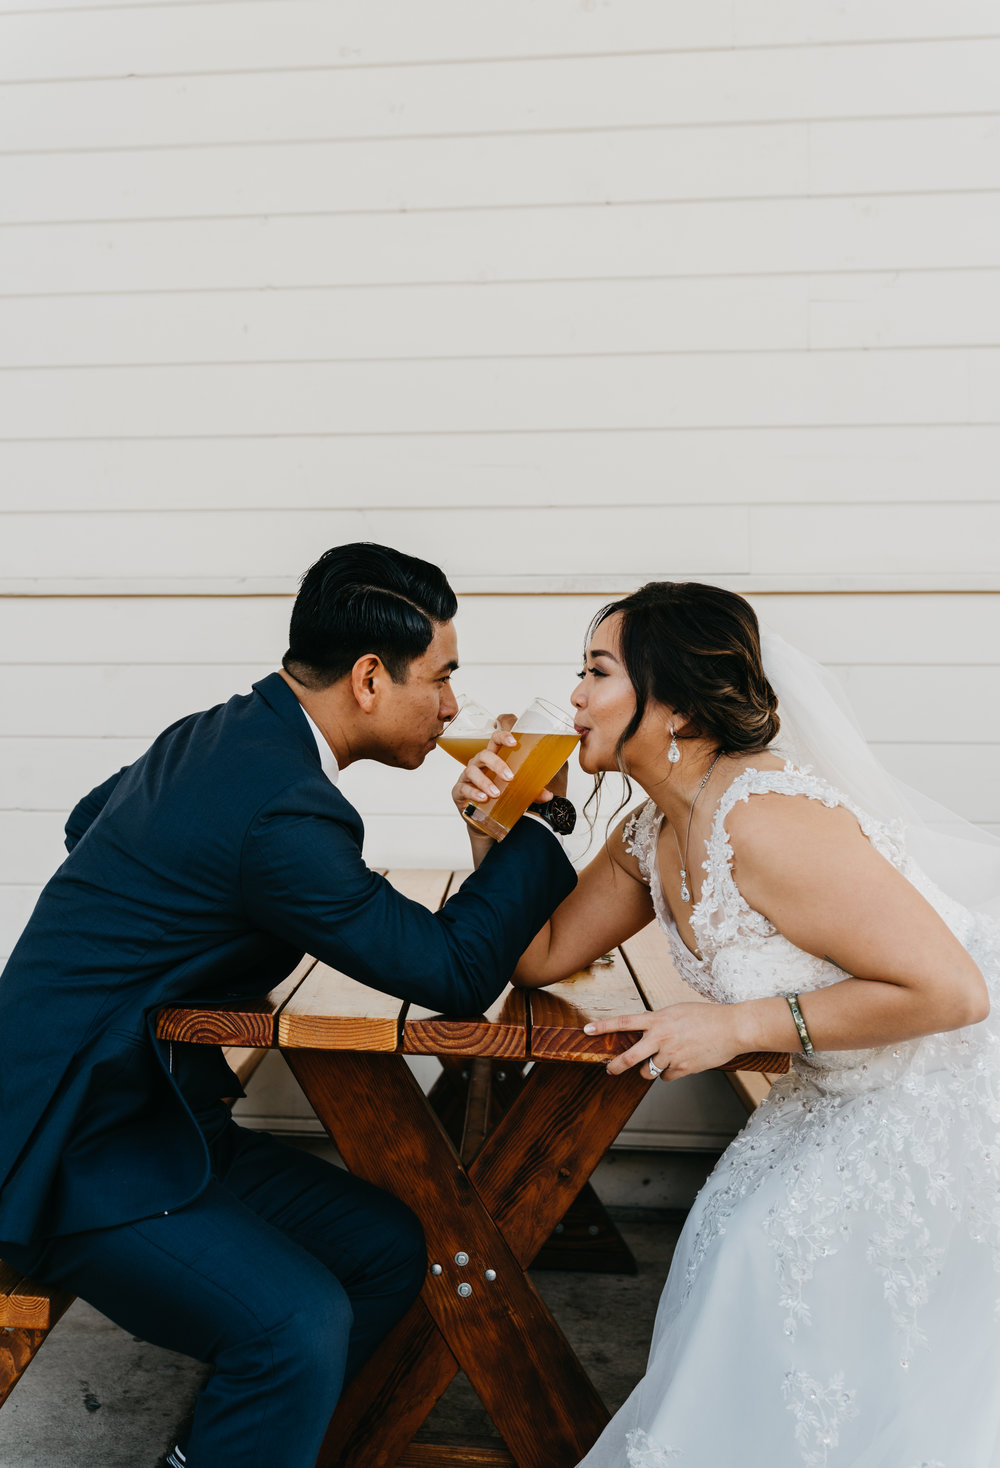 Intimate, authentic, candid wedding photography and videography for couples madly in love. Serving Southern California, Northern California, Orange County, San Gabriel Valley. | Sweet Like Honey Co. Photo and Films | Elopements, Weddings and Couples